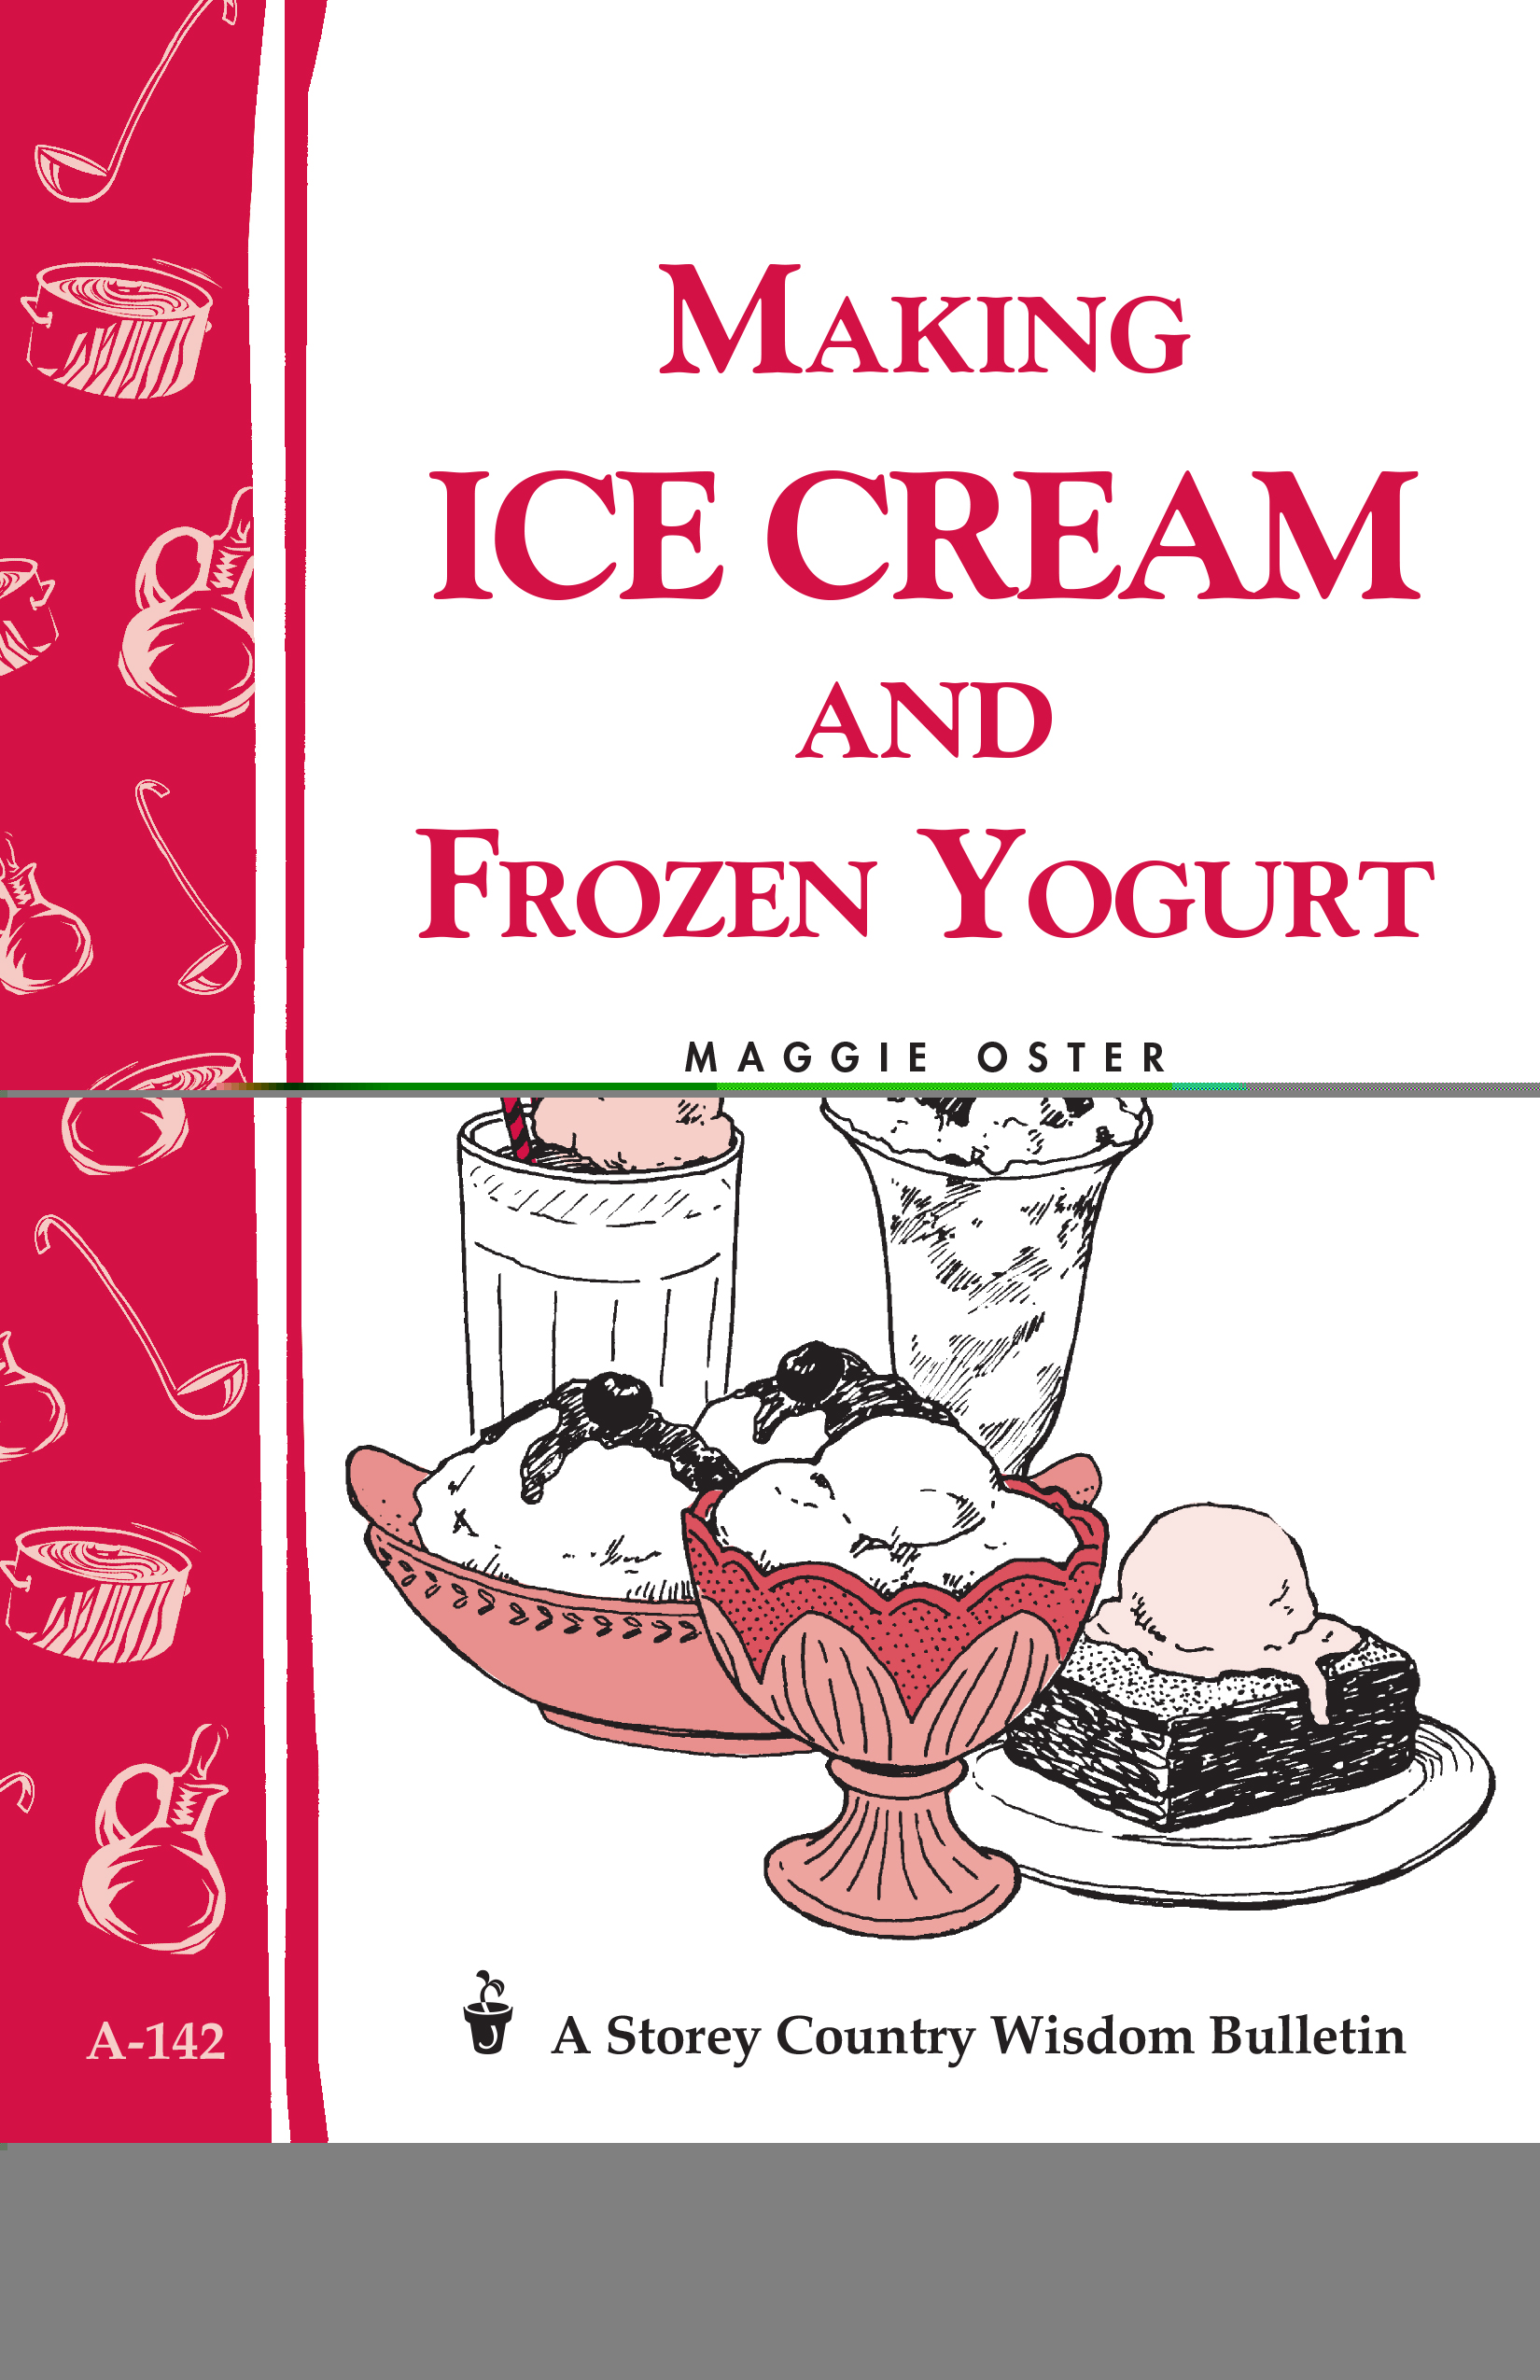 Making Ice Cream and Frozen Yogurt Storey's Country Wisdom Bulletin A-142 - Maggie Oster